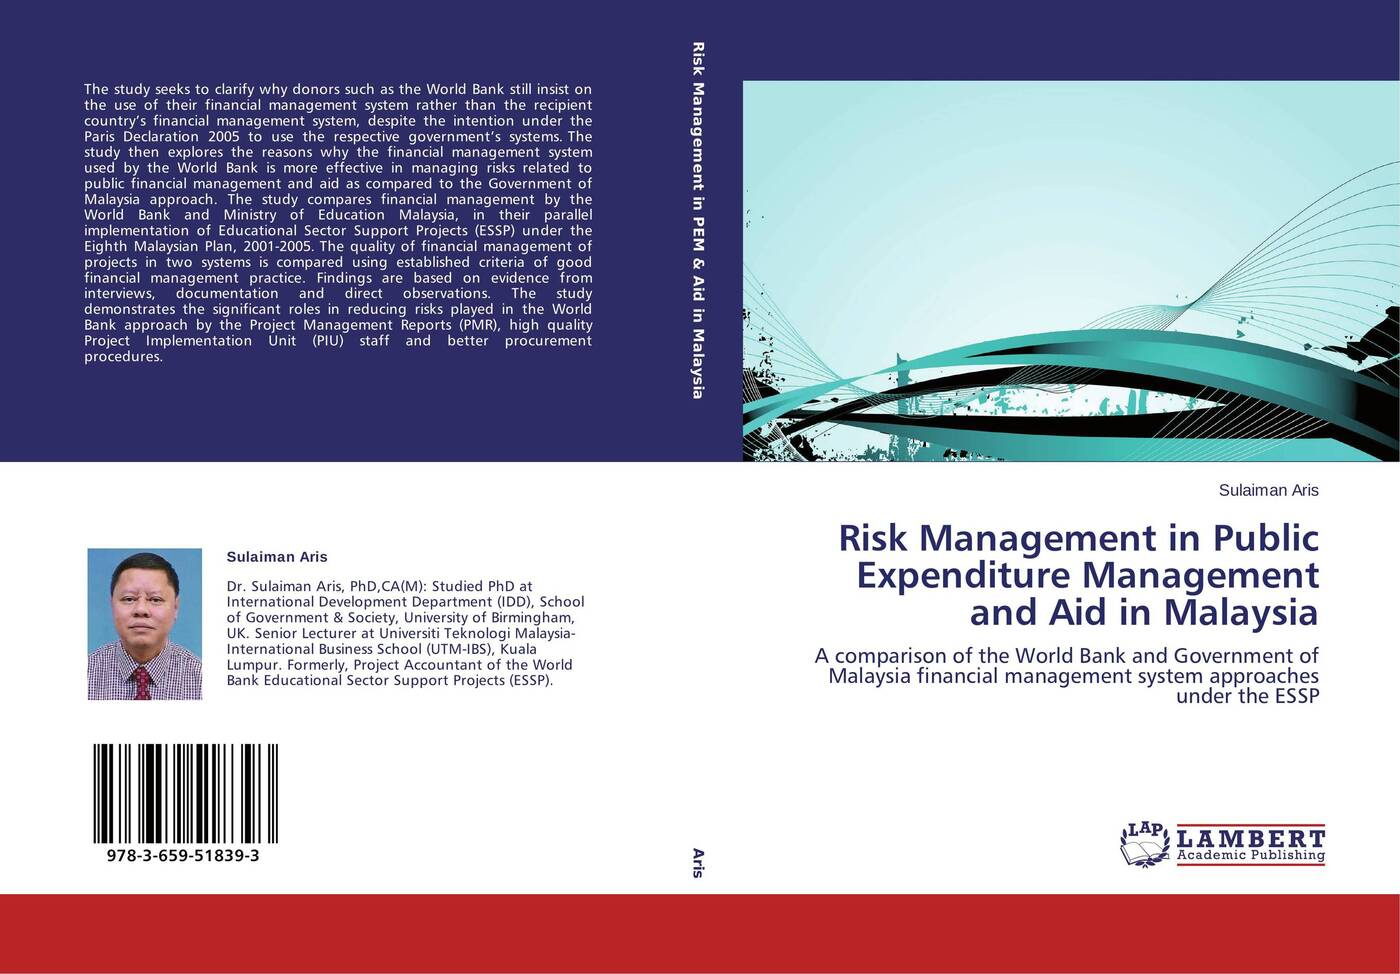 Sulaiman Aris Risk Management in Public Expenditure Management and Aid in Malaysia implementation of rf based speed governor system in public sector